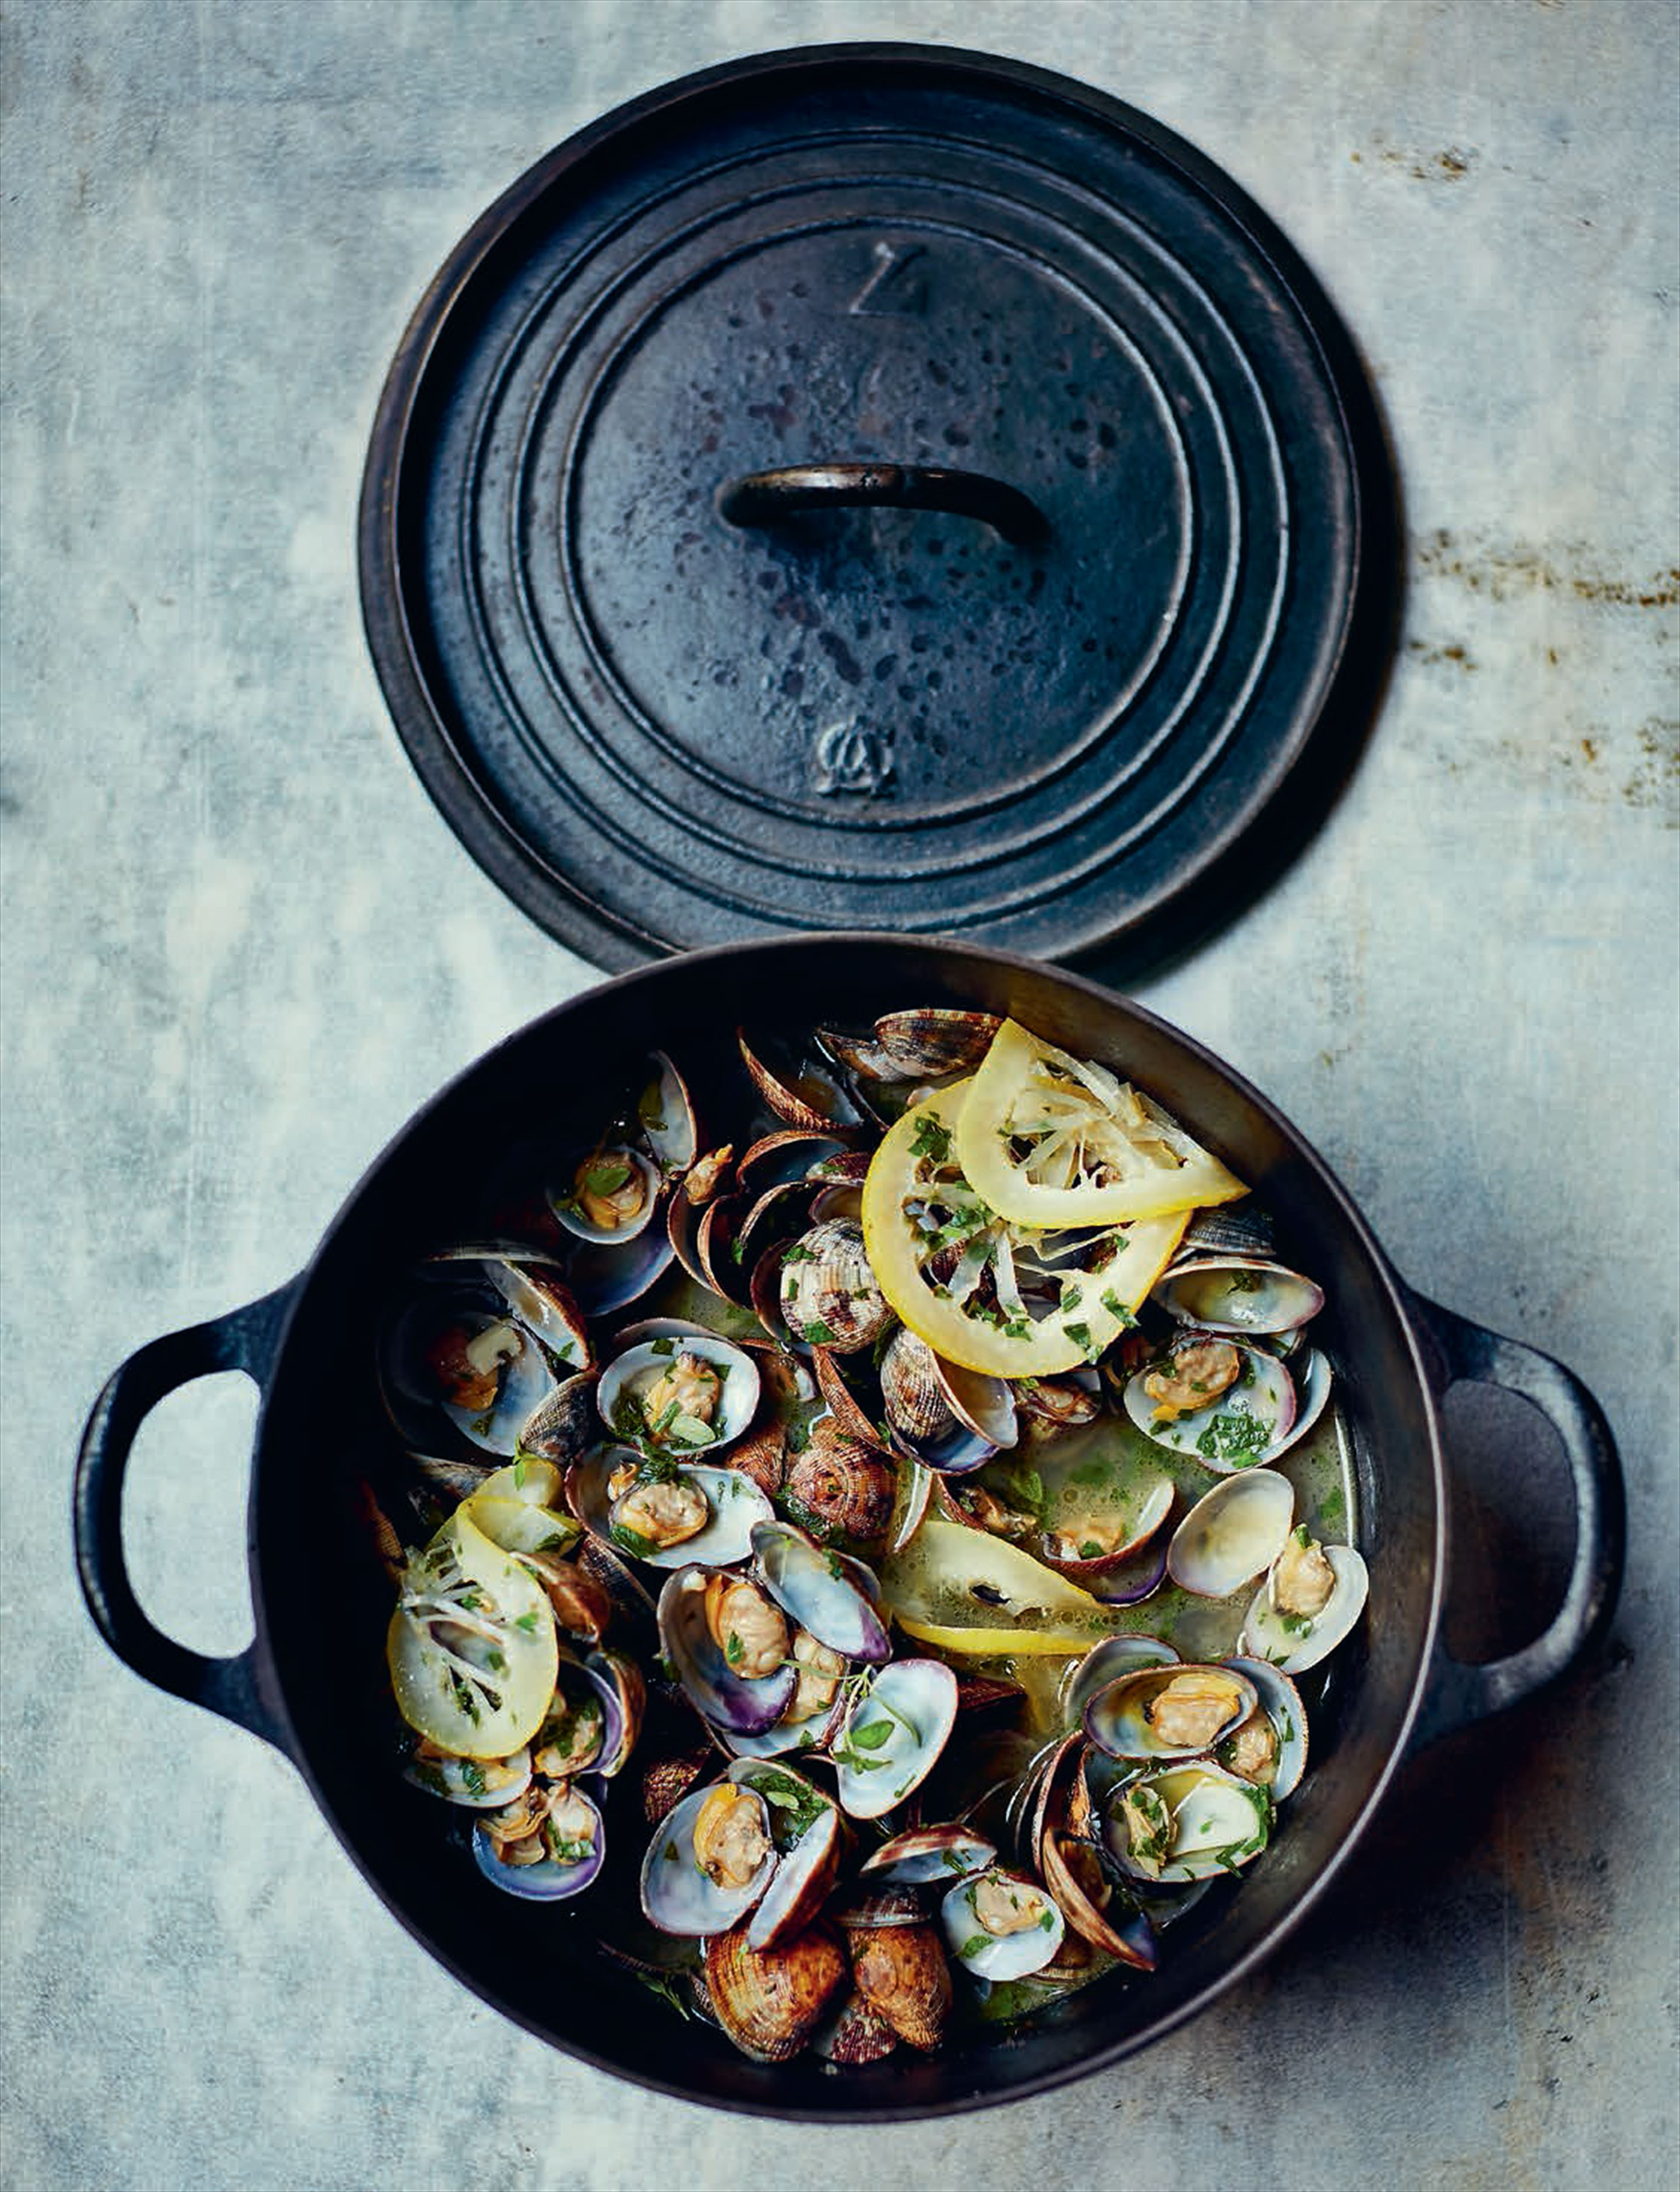 Sautéed clams with garlic, lemon & parsley